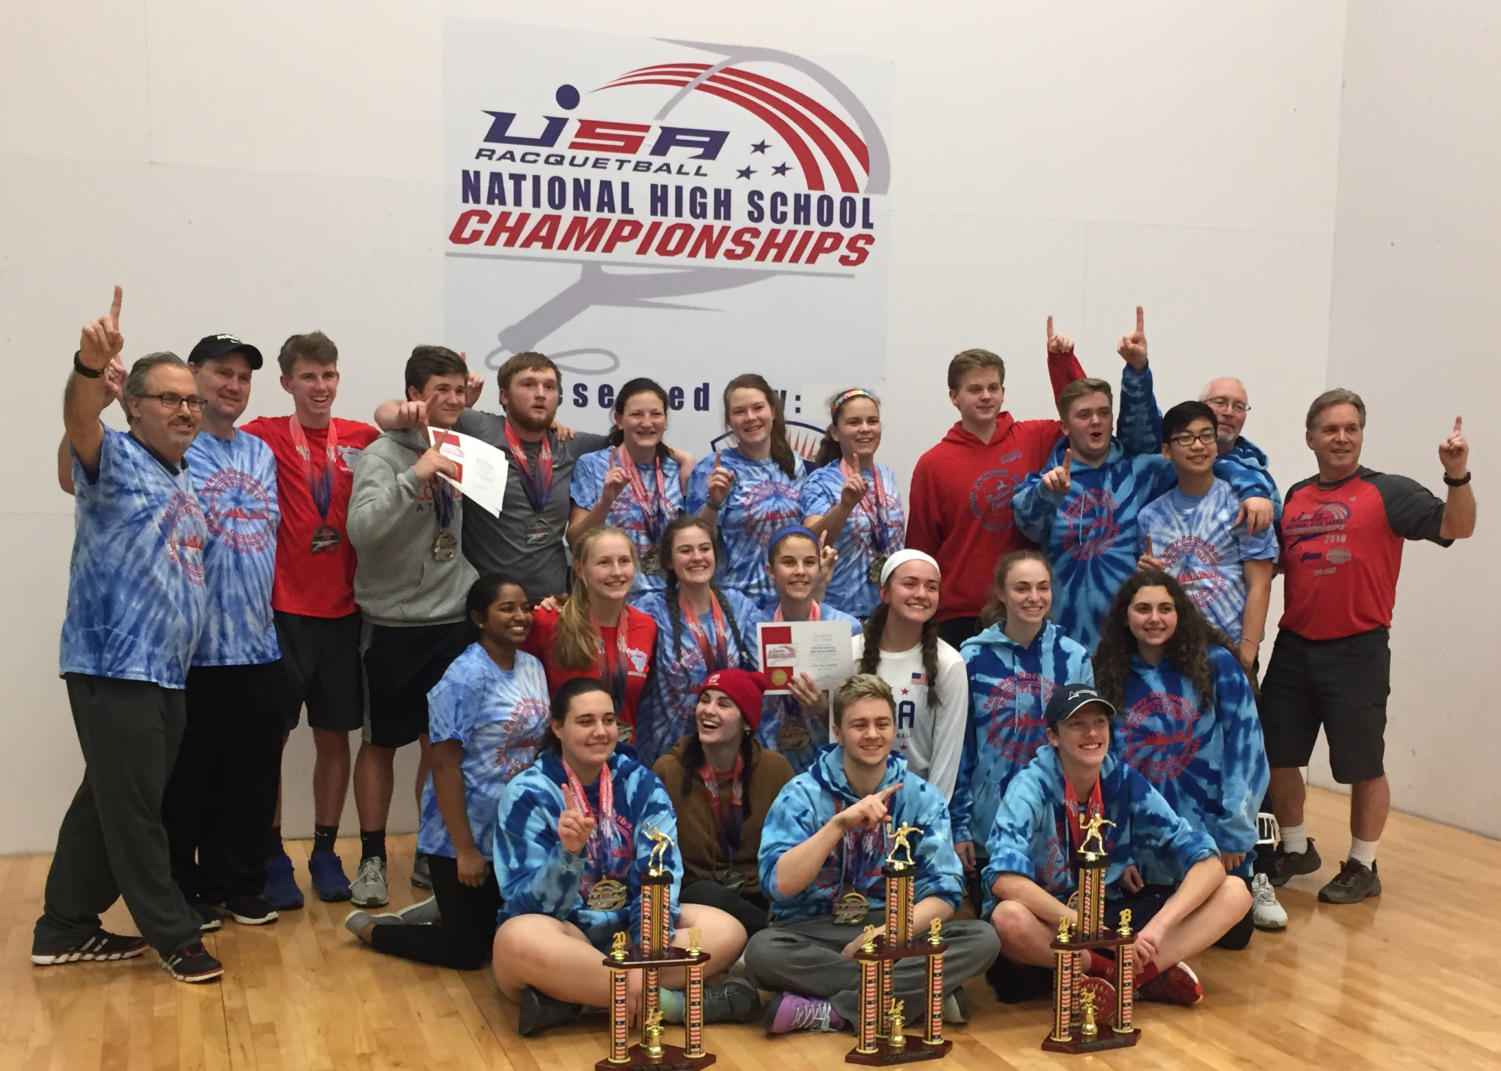 Members of the Parkway racquetball team pose for a team picture after winning the national championship.